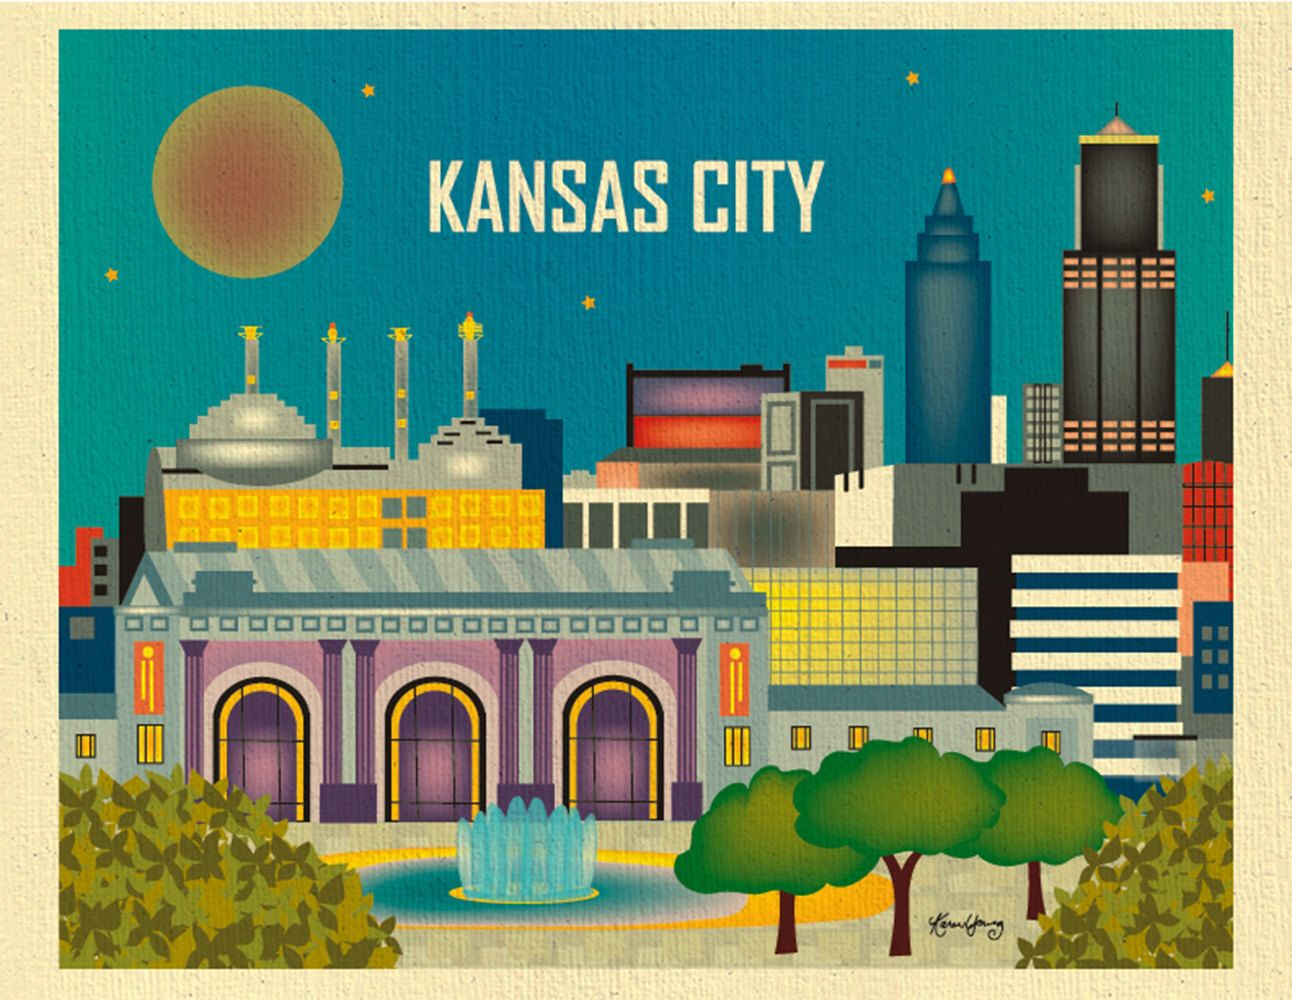 Kansas City Skyline Missouri Destination Travel Wall Art Print For Home Office